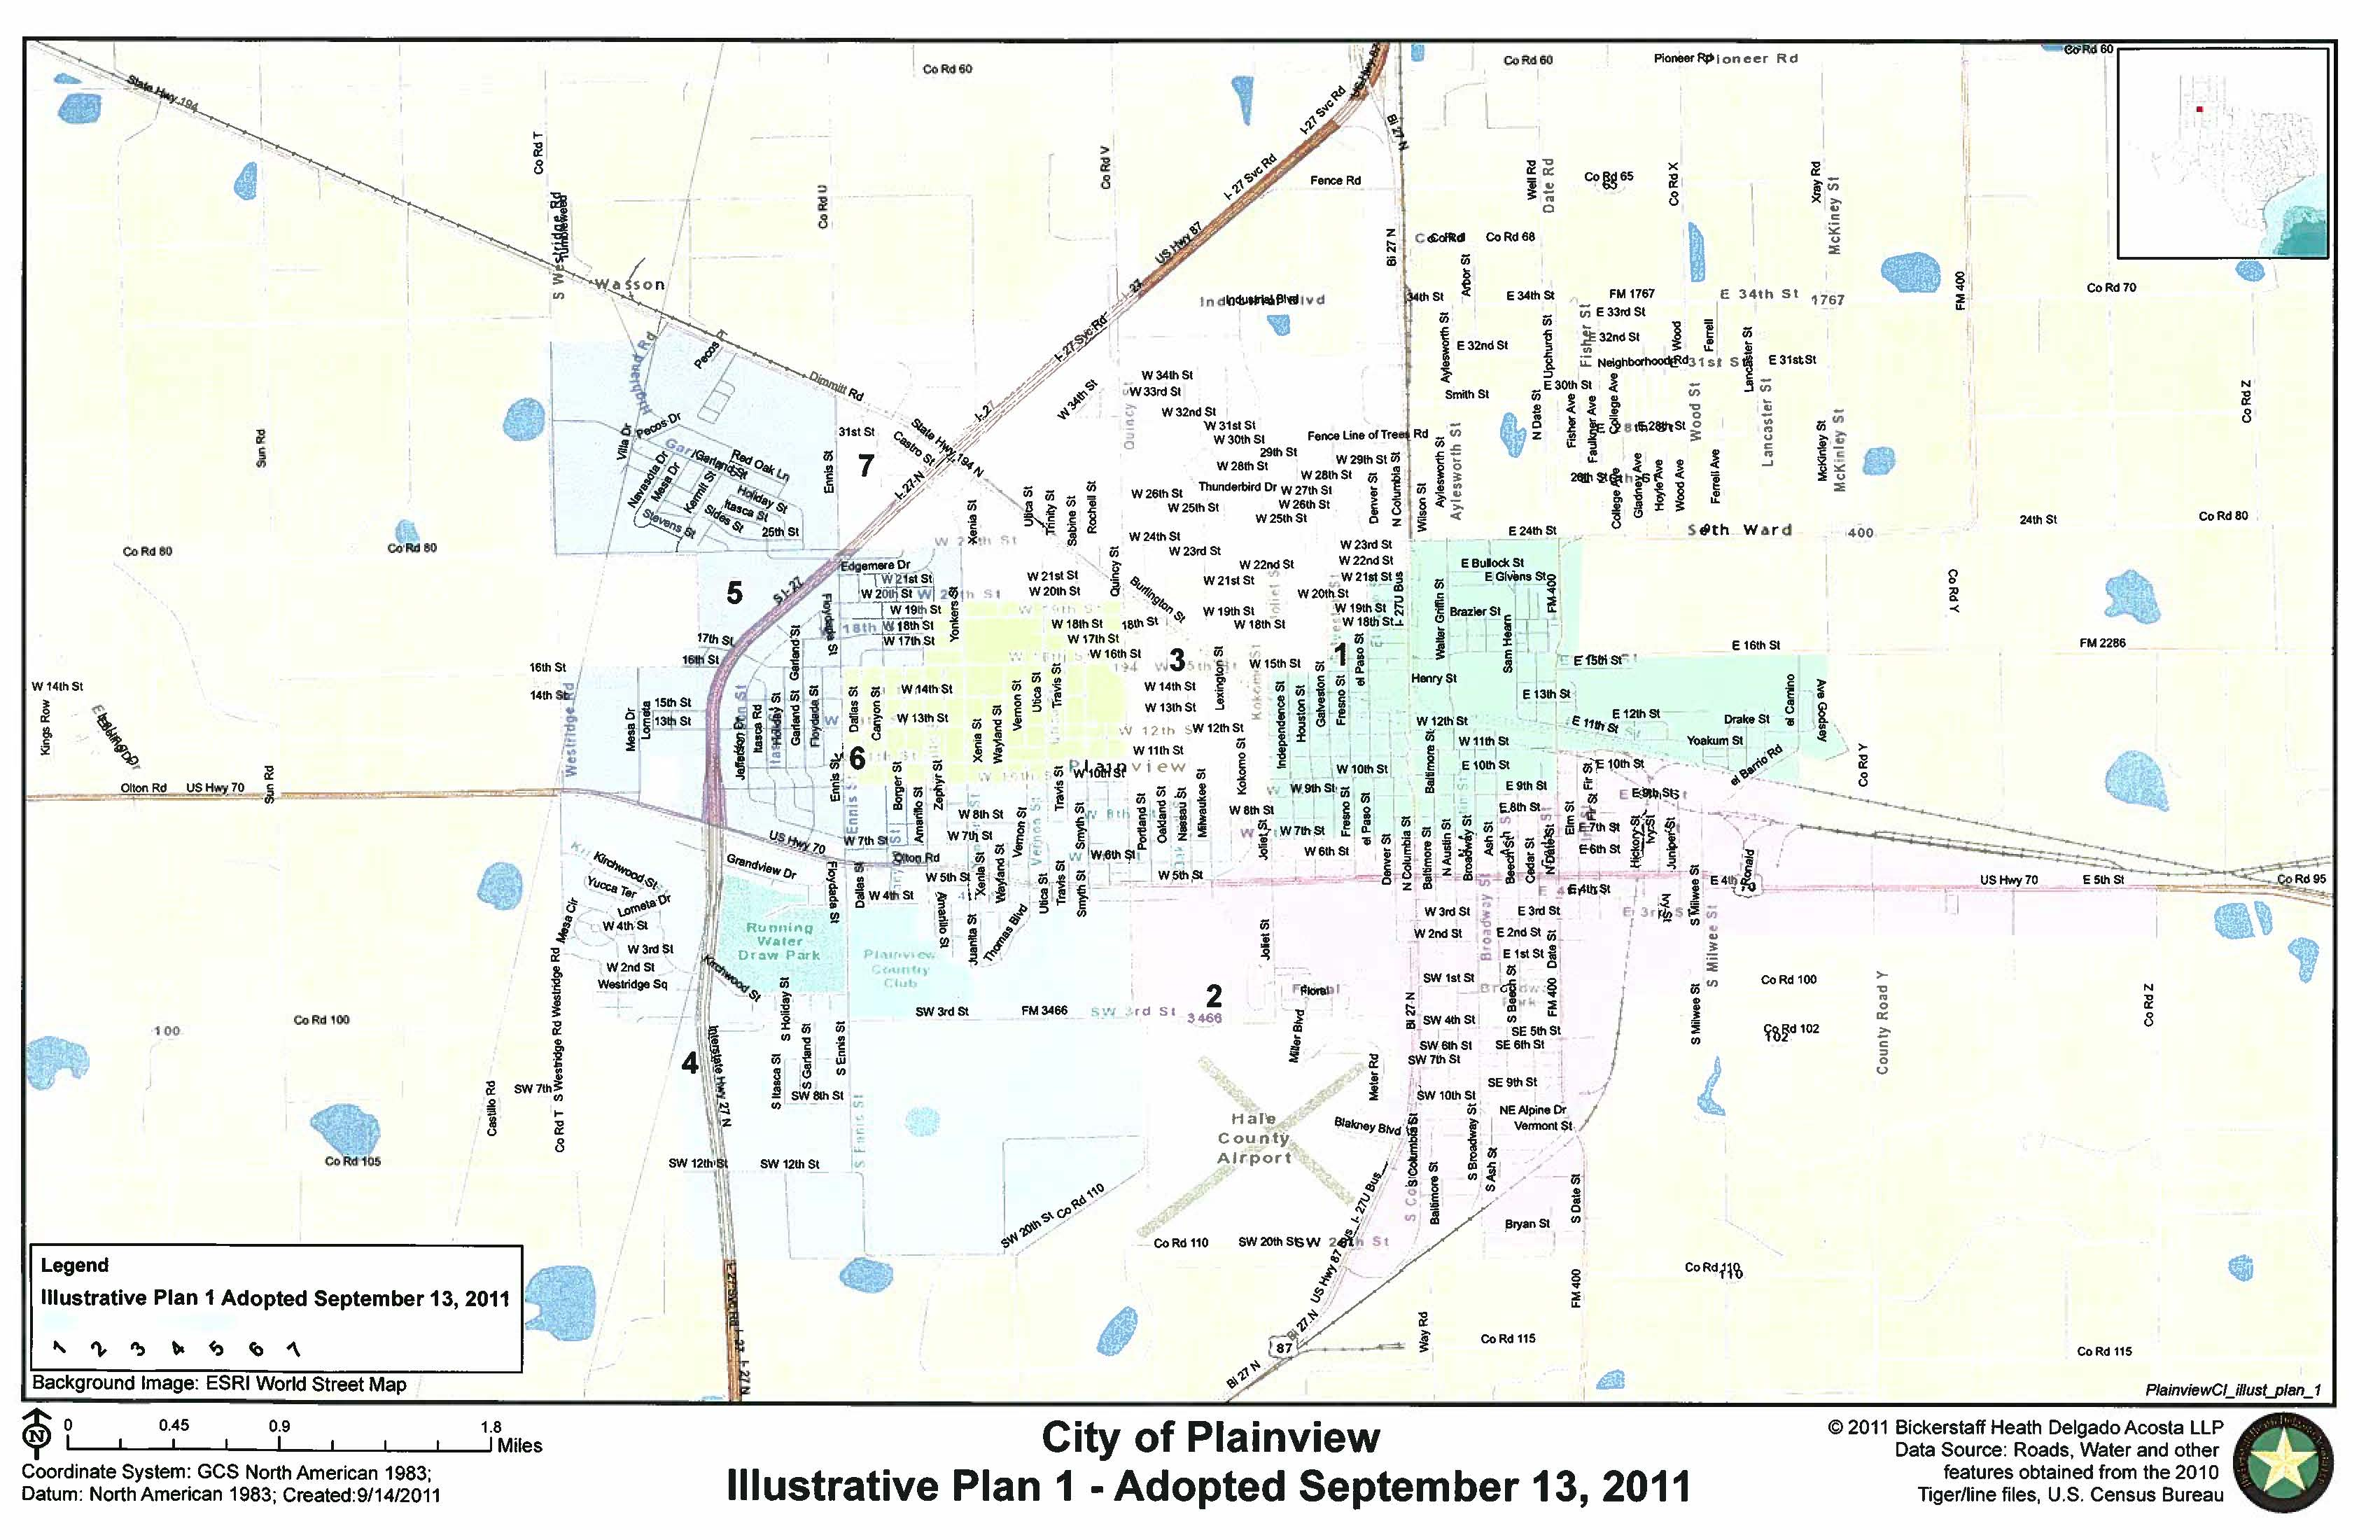 City of Plainview Map